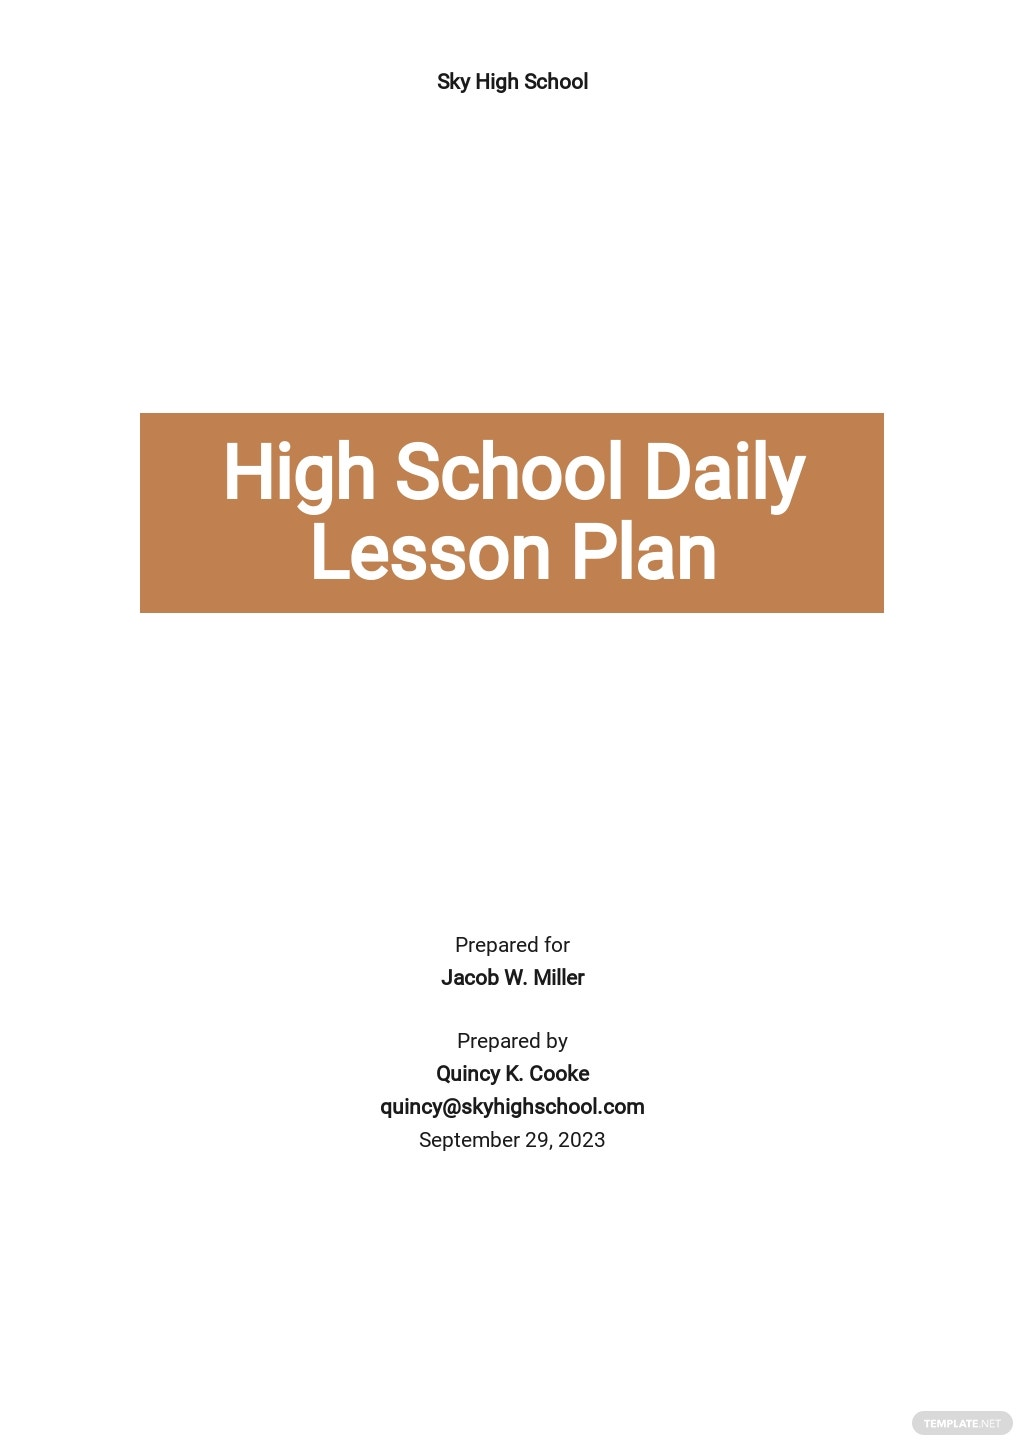 High School Daily Lesson Plan Template.jpe